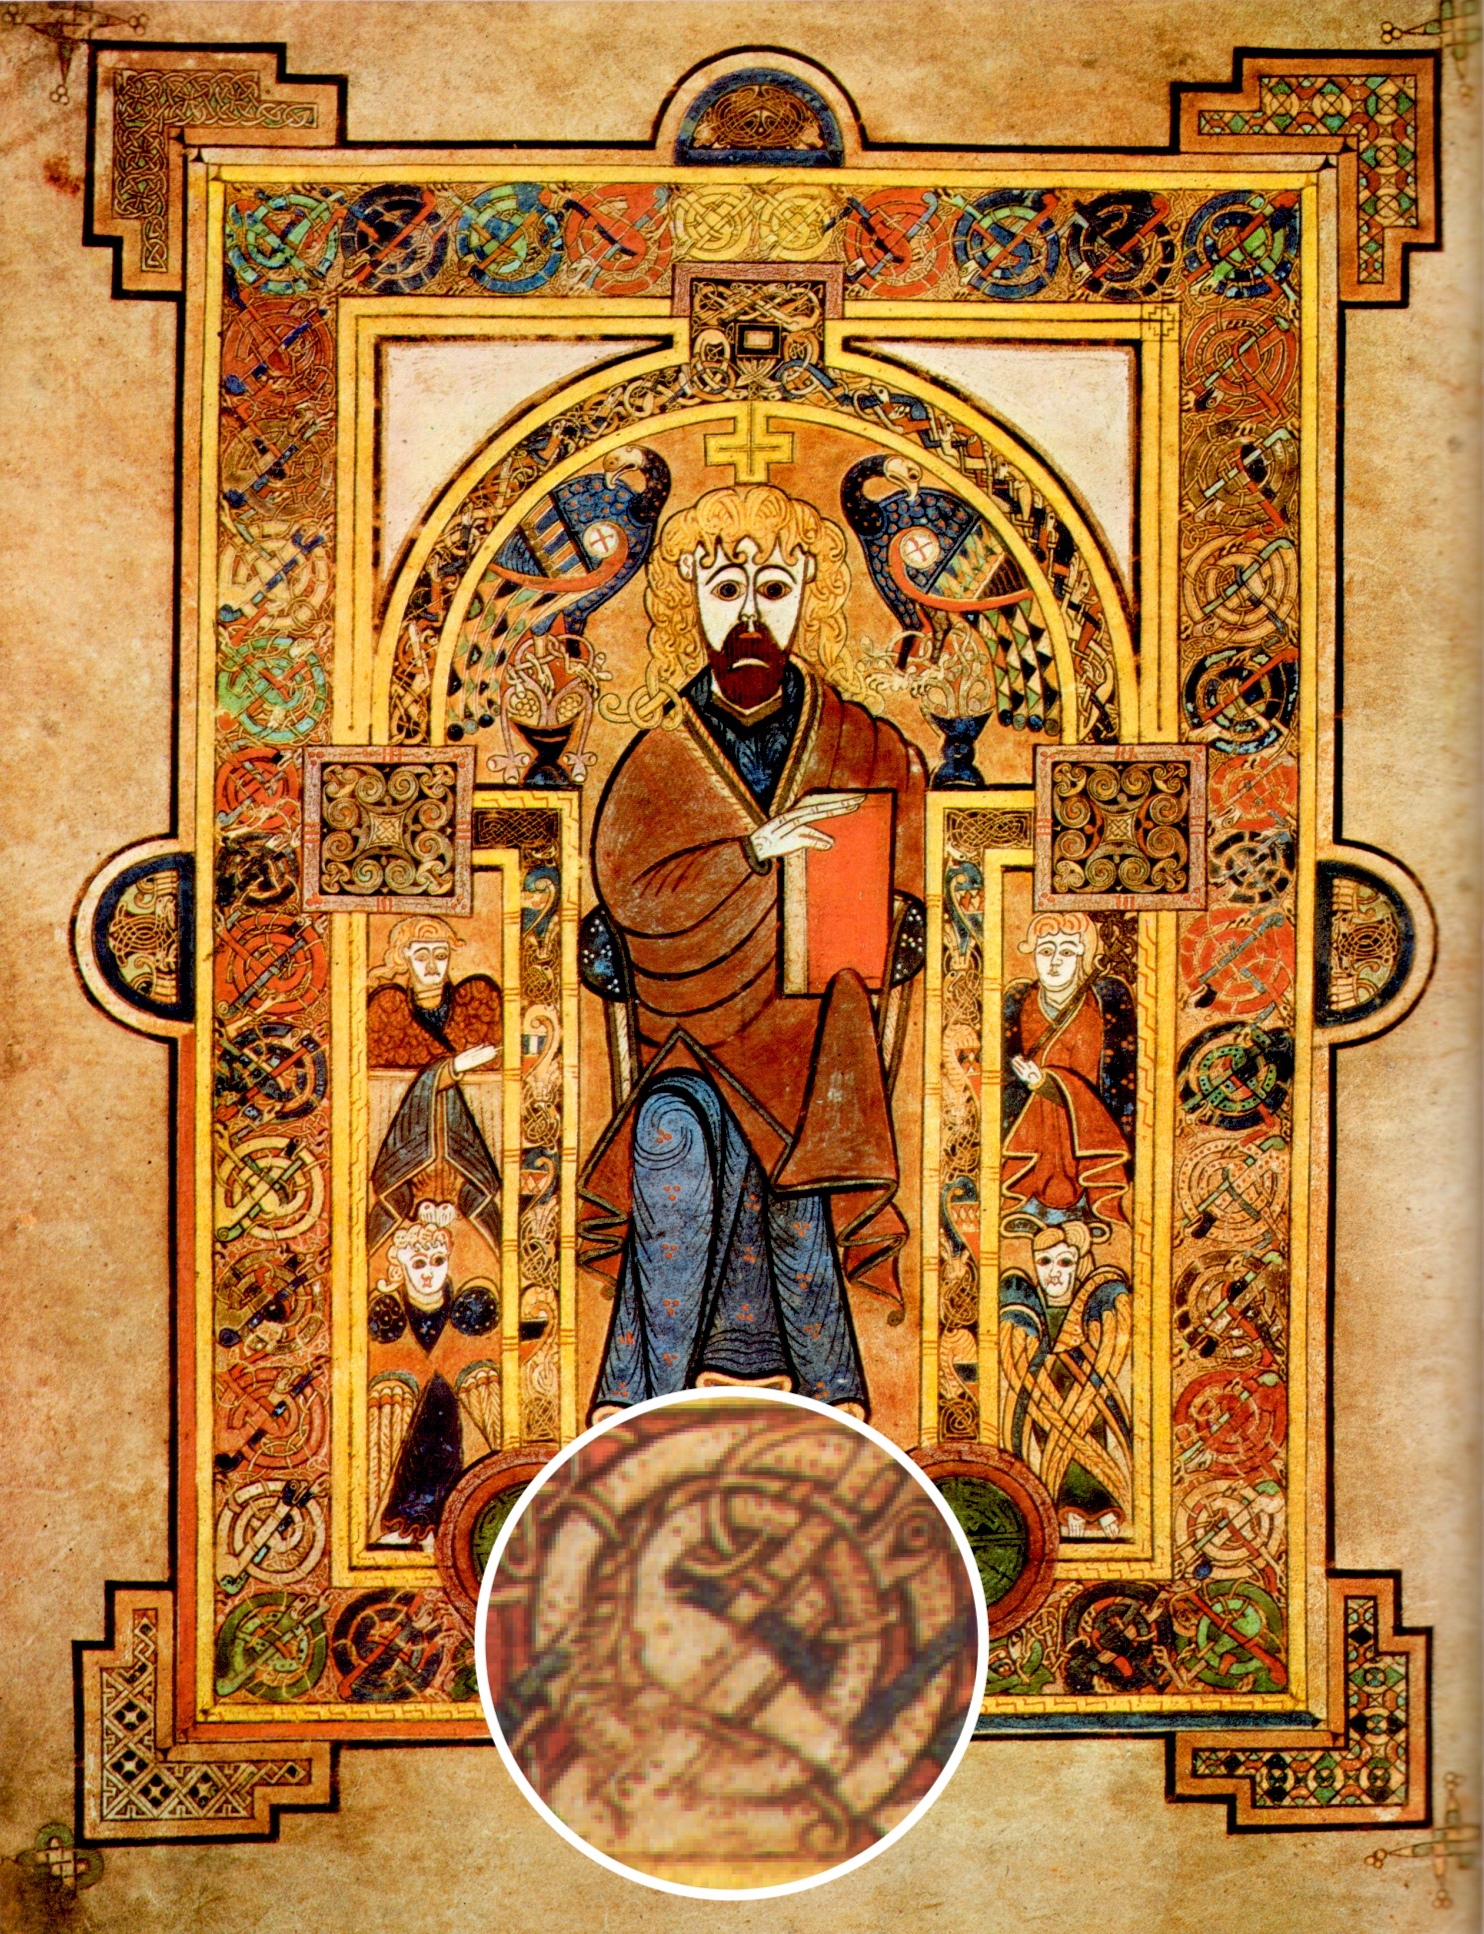 Abbey of Kells - Scanned from Treasures of Irish Art, 1500 BC to 1500 AD : From the Collections of the National Museum of Ireland, Royal Irish Academy, & Trinity College, Dublin, Metropolitan Museum of Art & Alfred A. Knopf, New York, 1977.  CC ASA 3.0